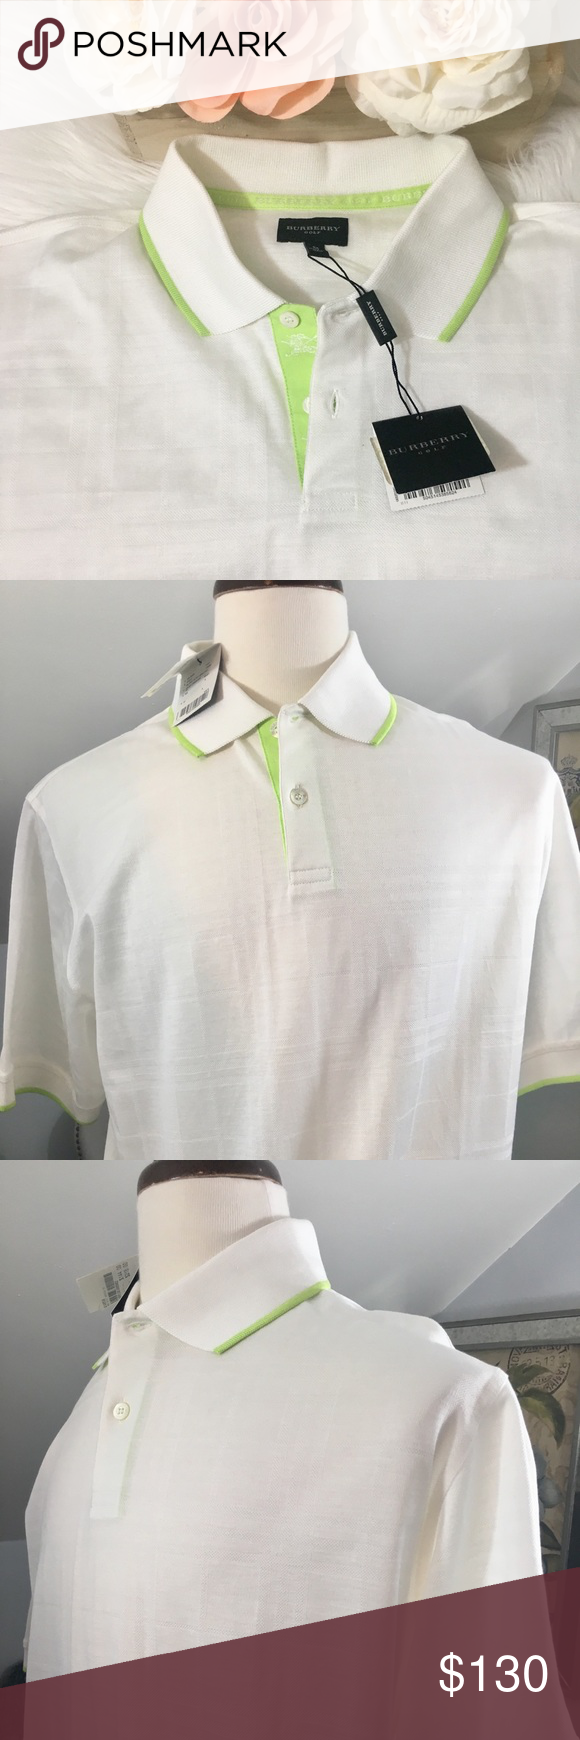 90505ff2 Men's Burberry Golf NWT Polo Shirt Men's Burberry NWT Golf Polo Shirt in  White with Green